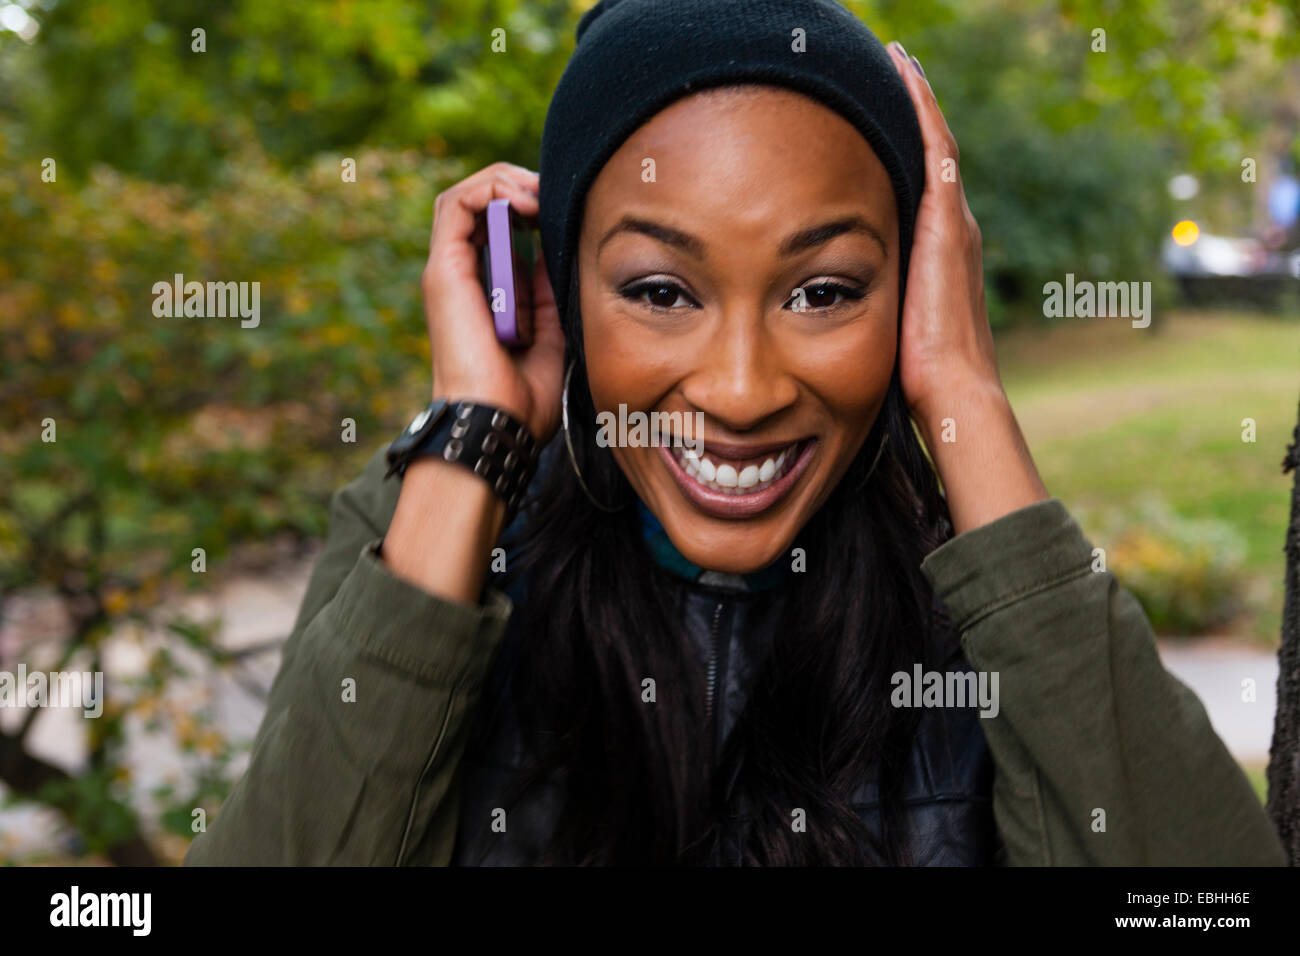 Young woman smiling and holding smartphone à l'oreille Photo Stock